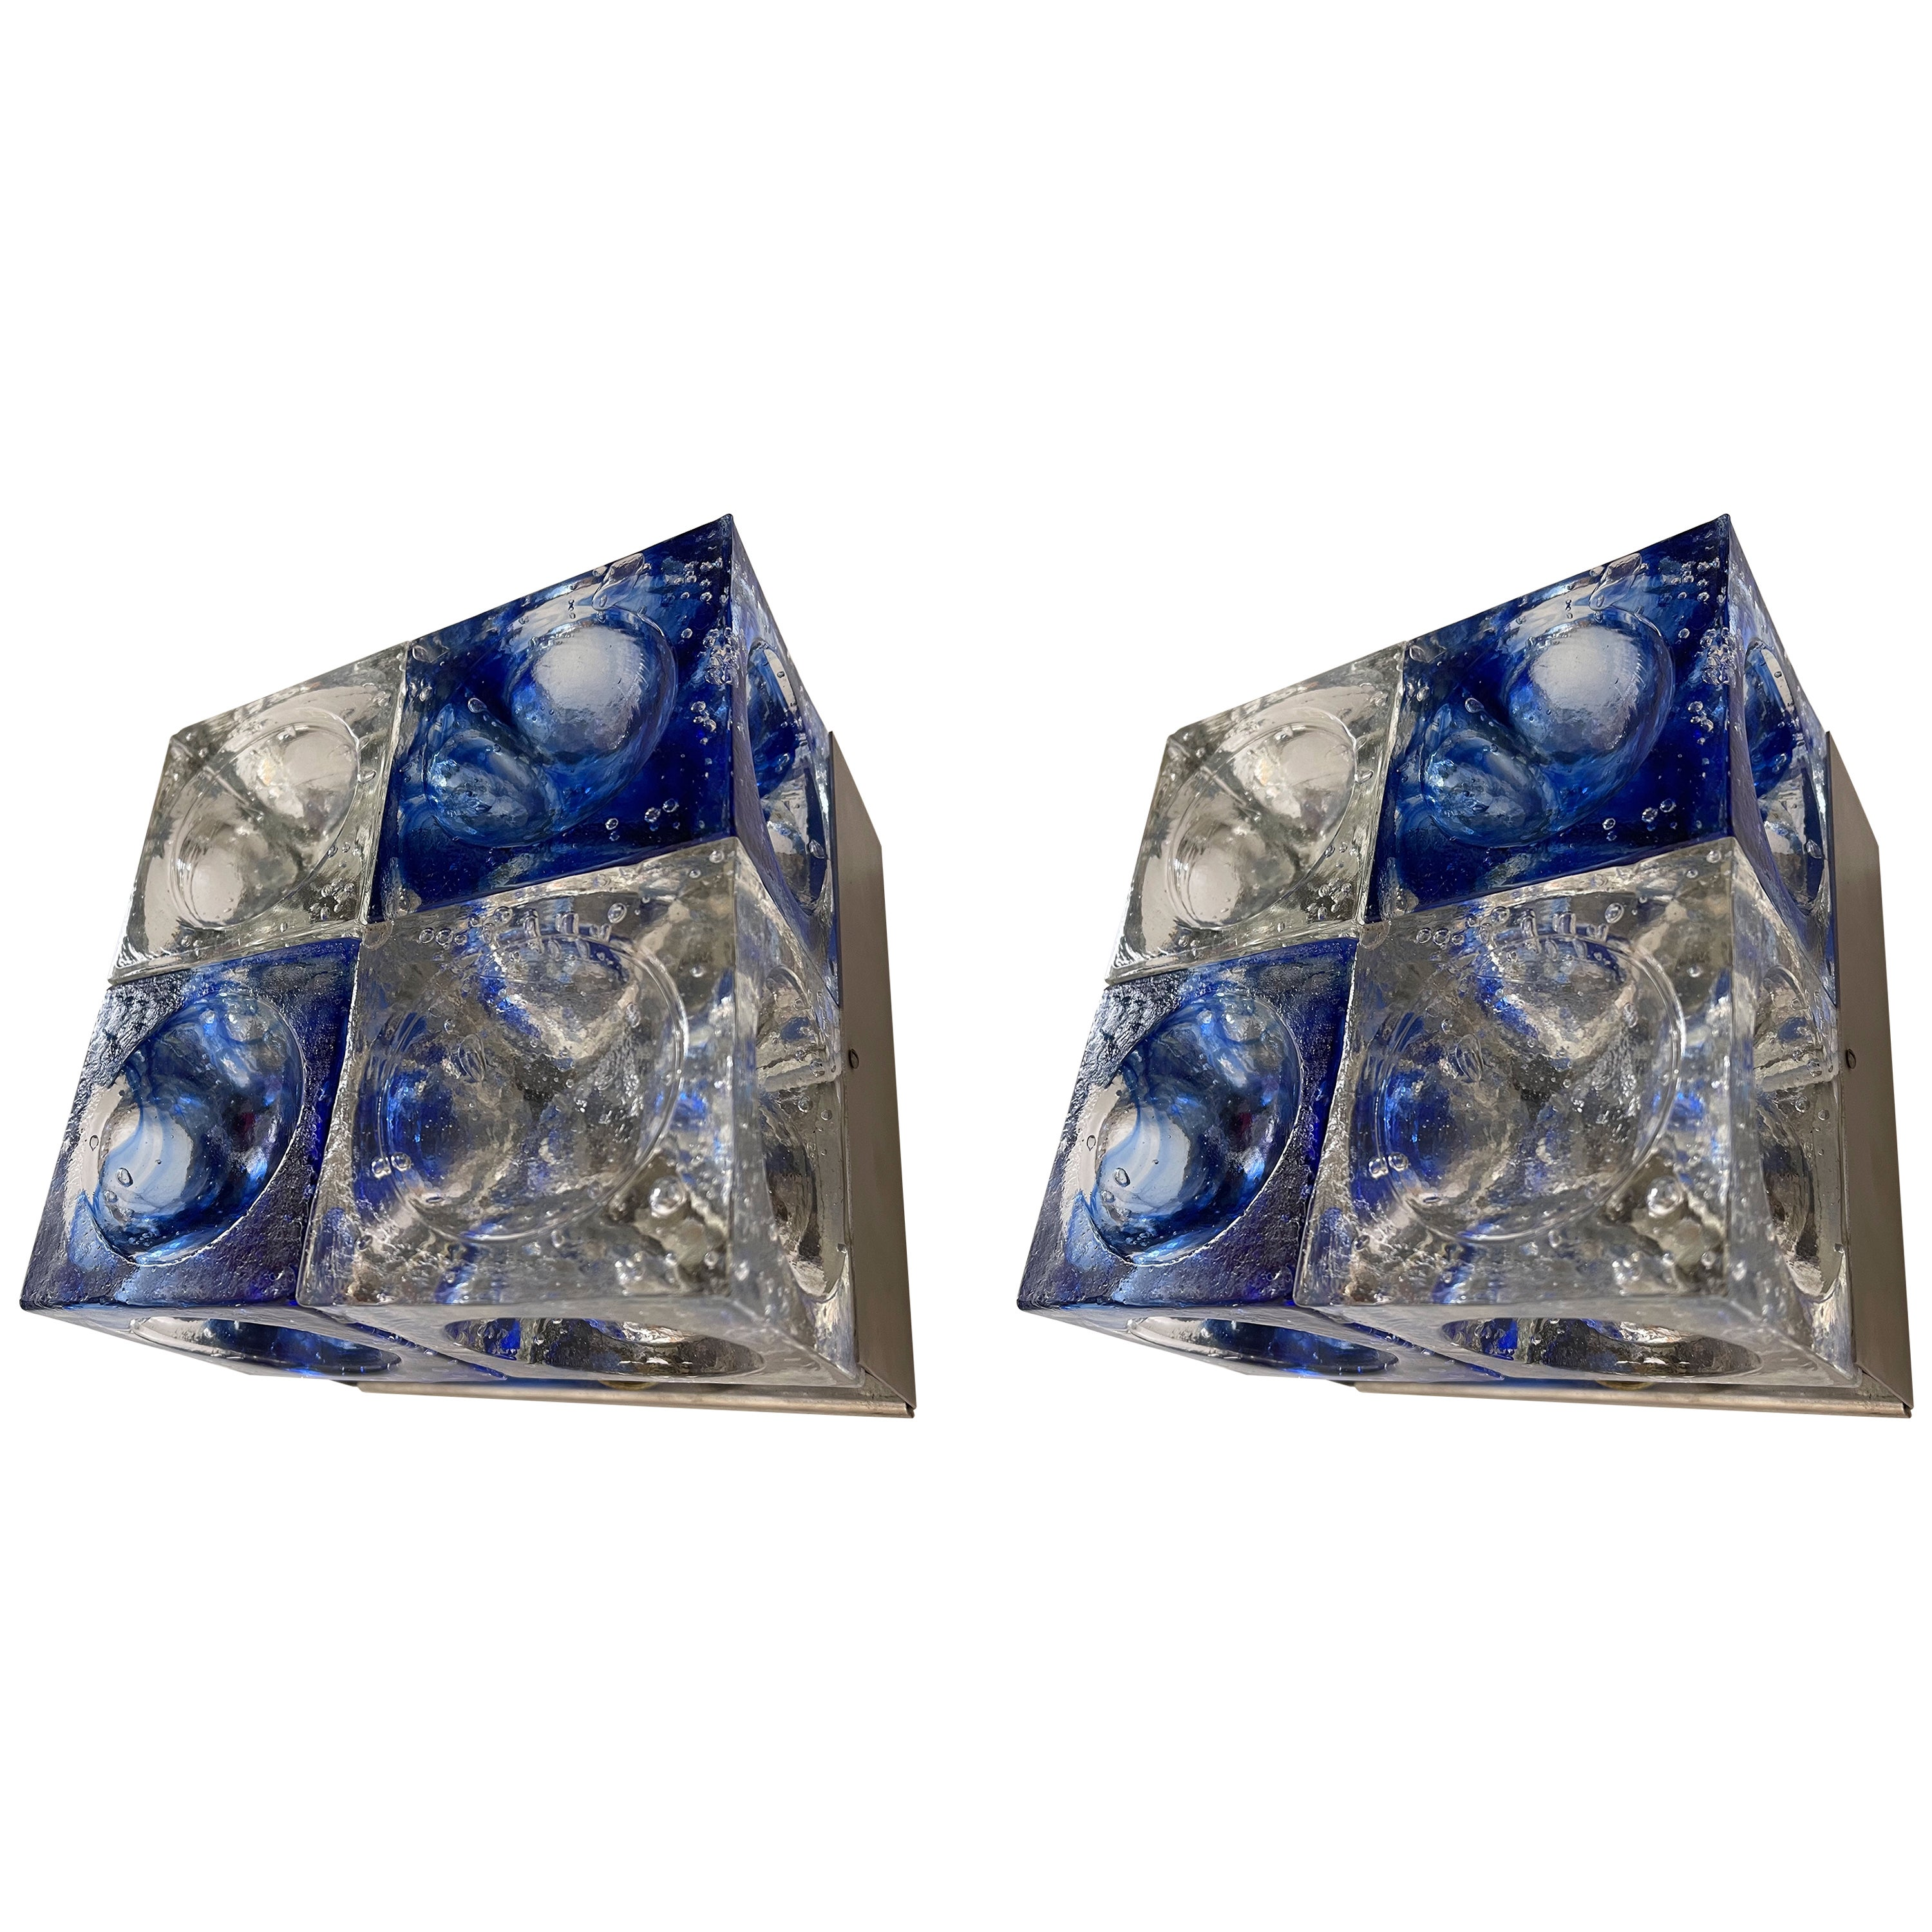 Pair of Blue Glass Cube Sconces by Poliarte, Italy, 1970s